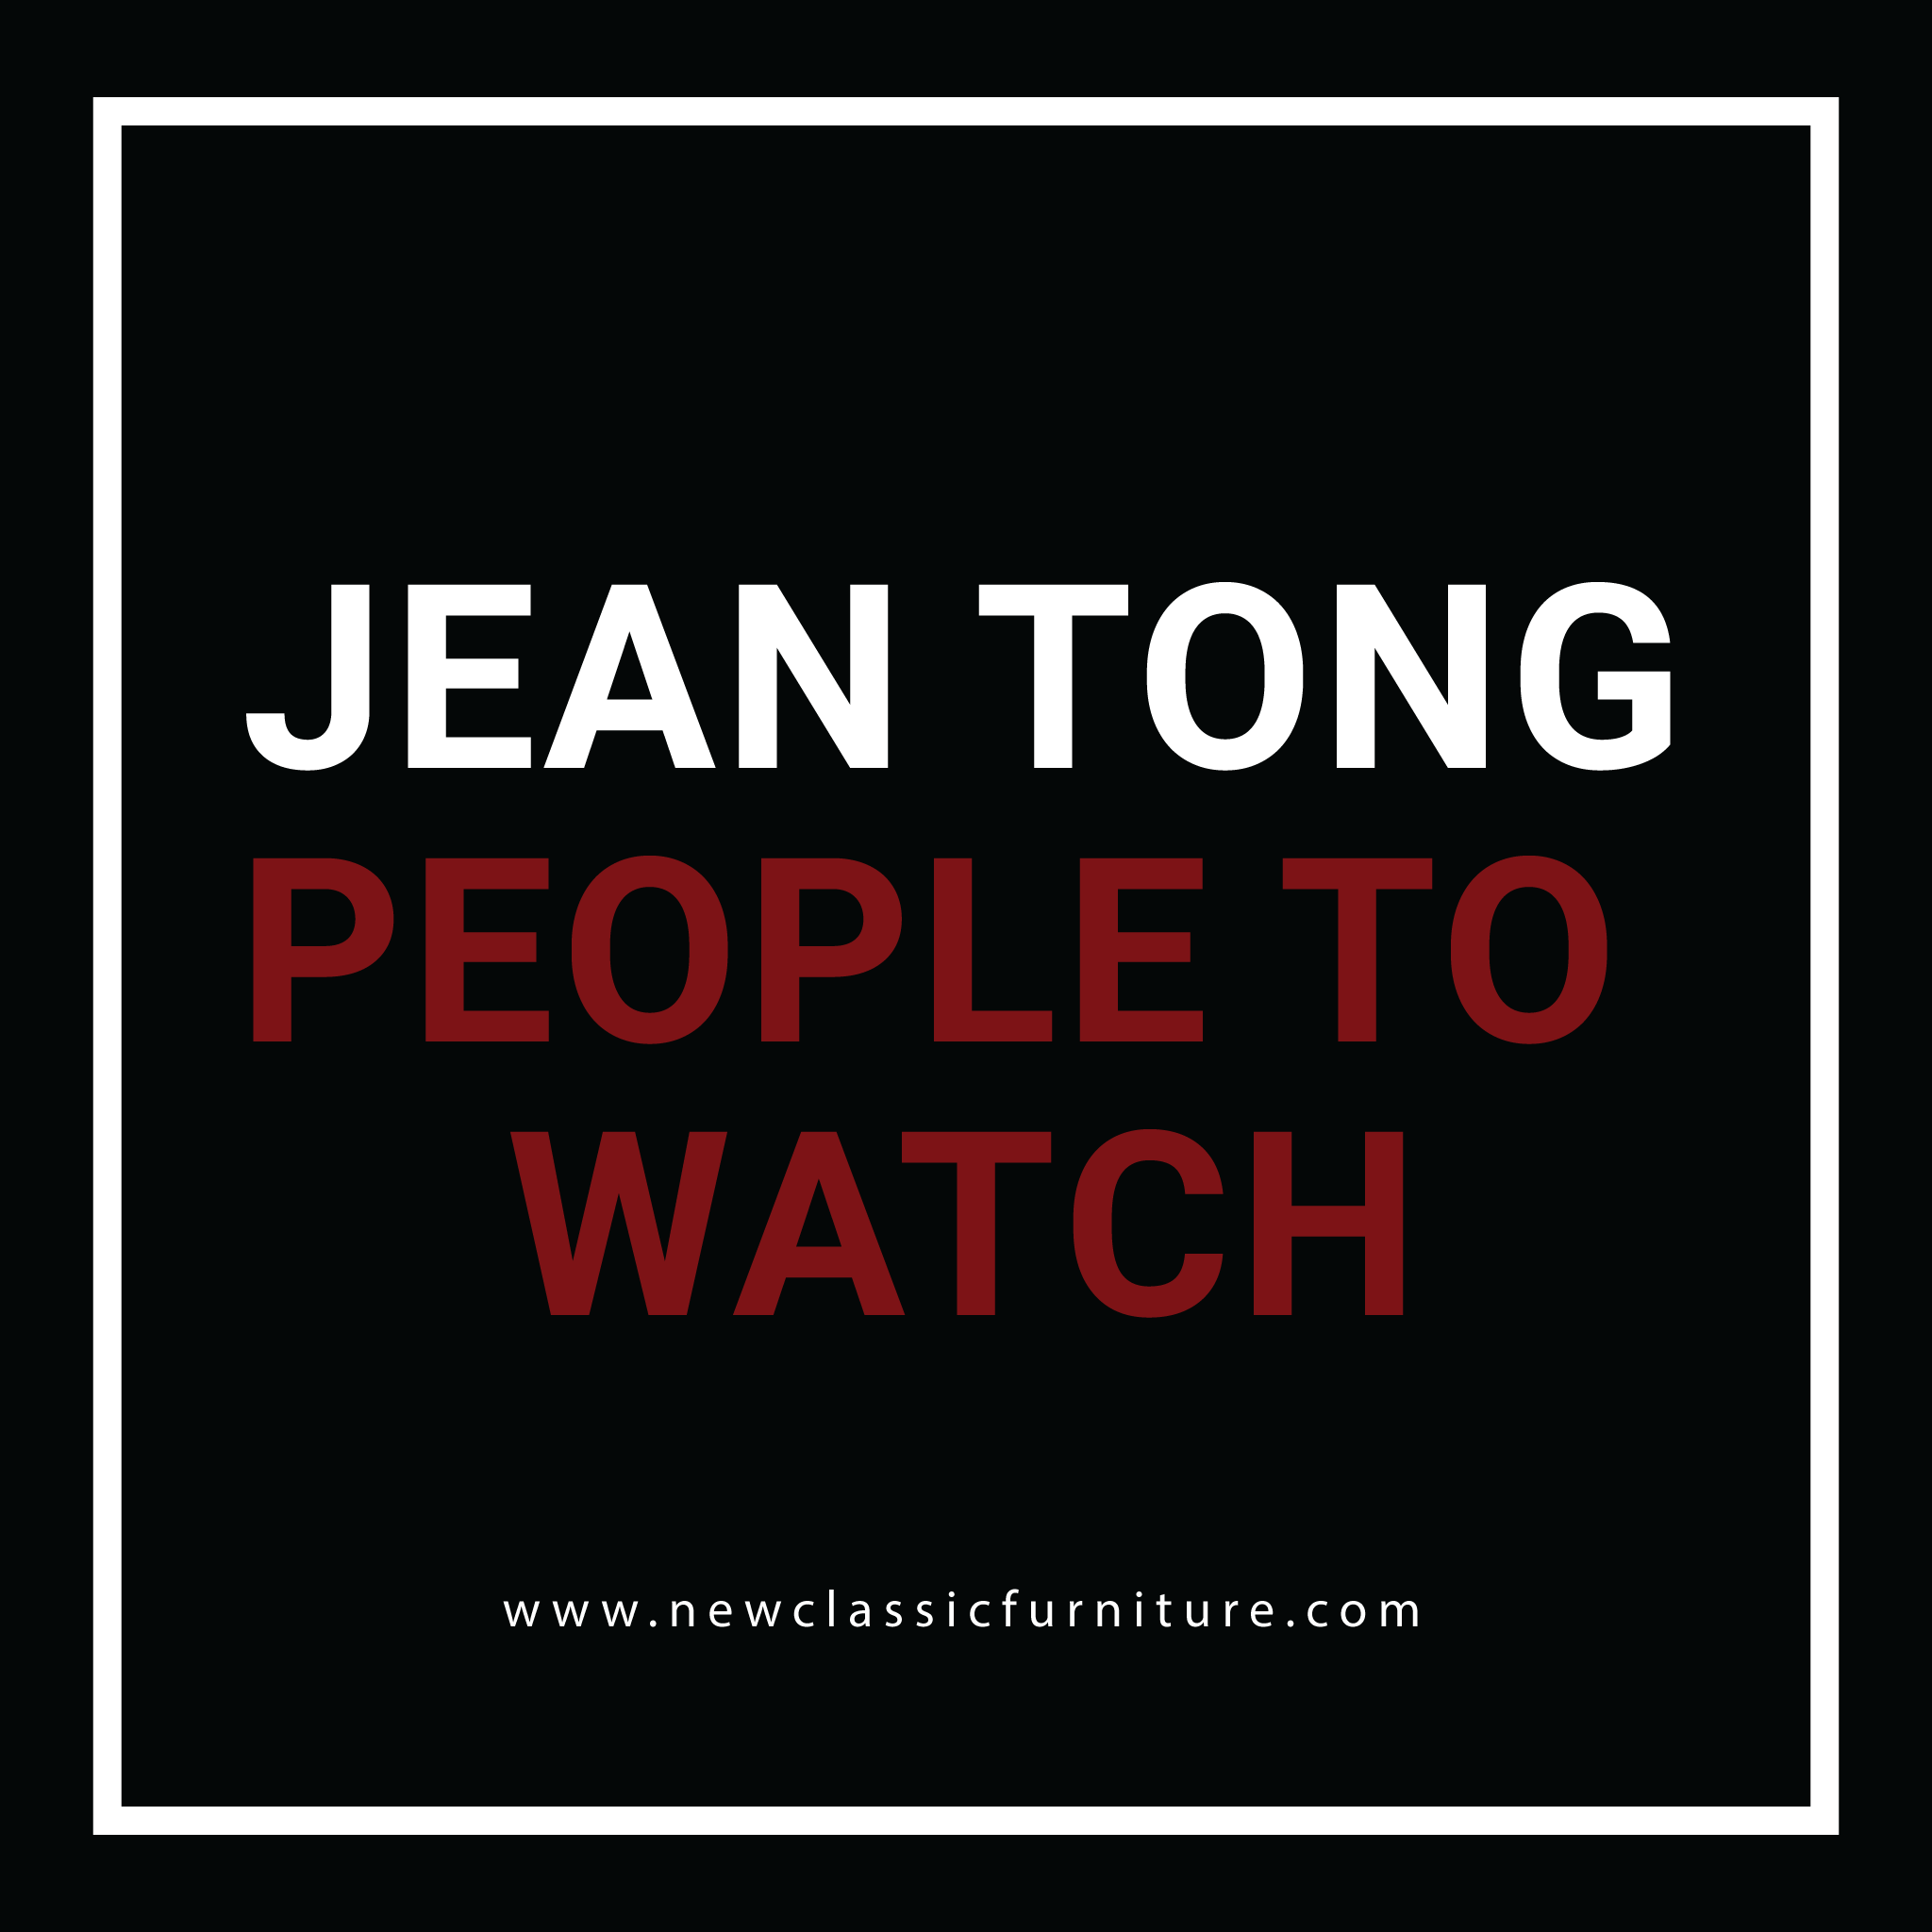 Jean Tong – 2019 People to Watch